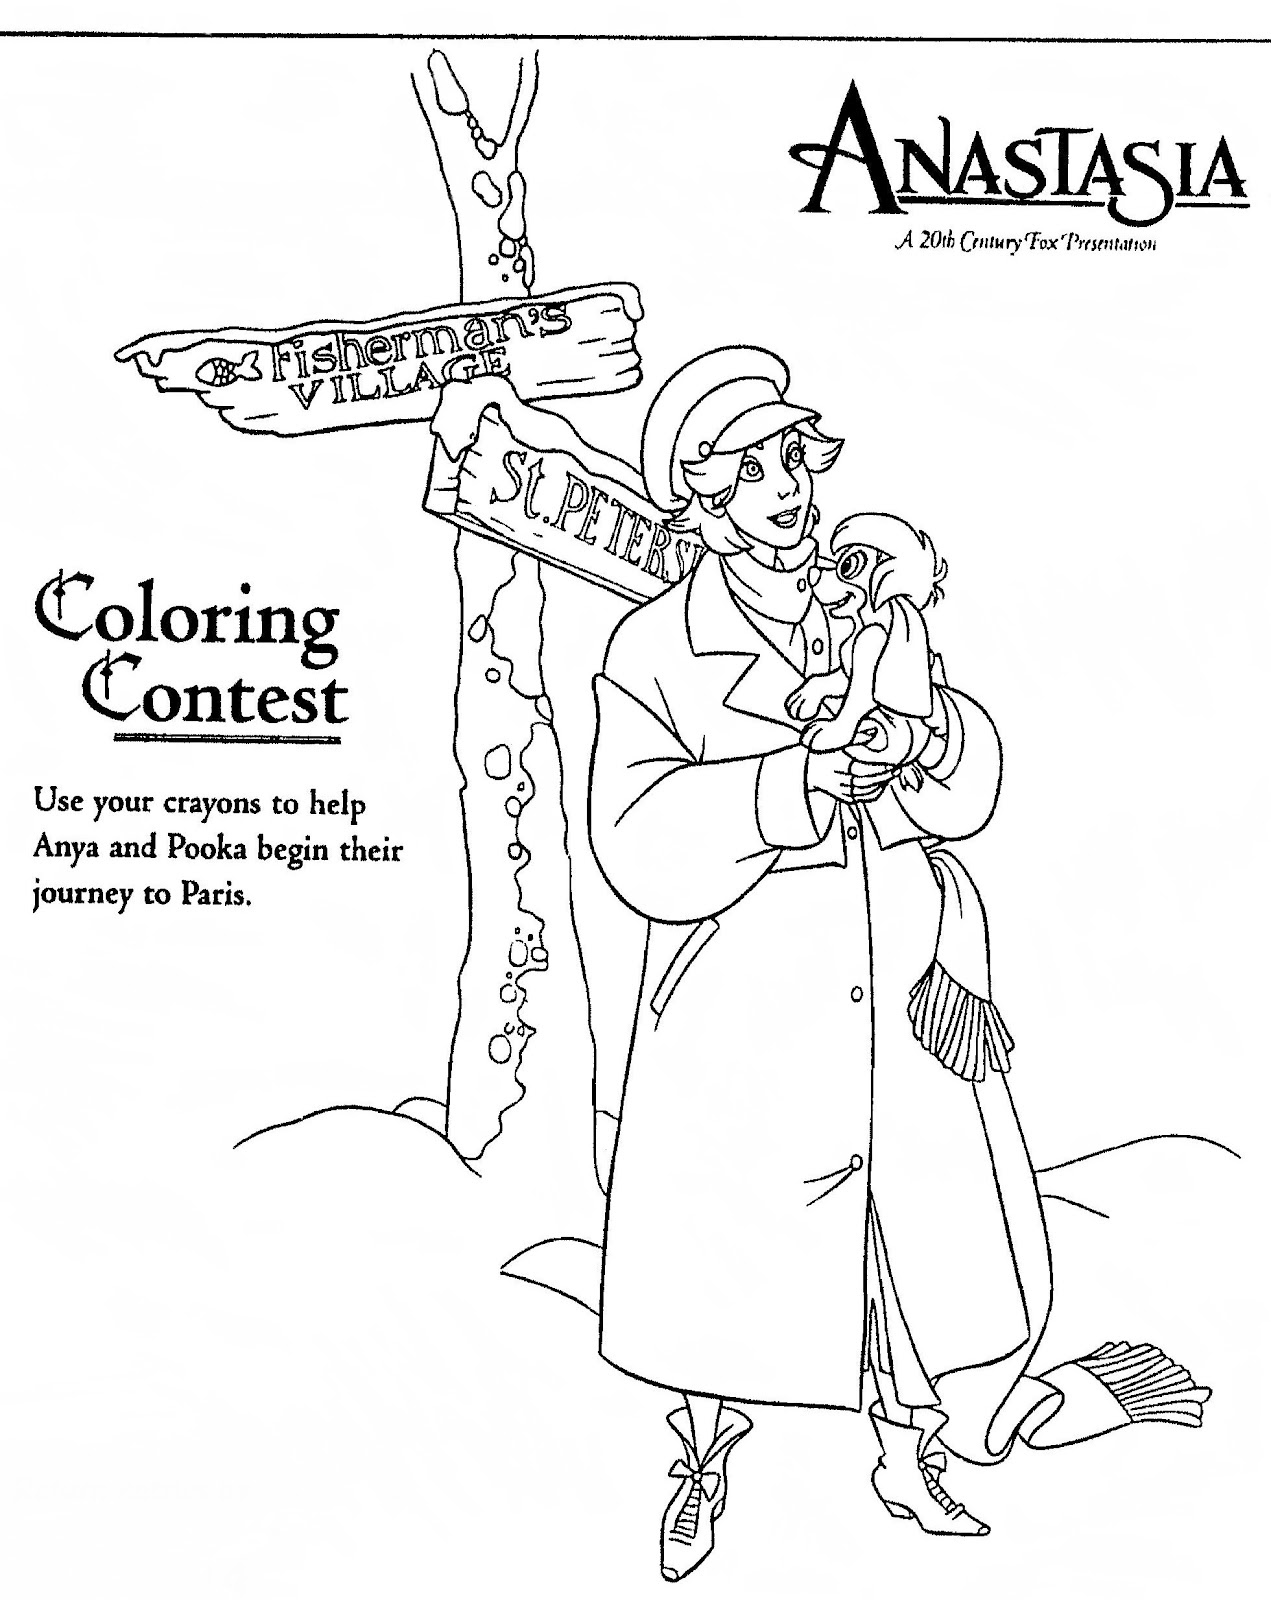 ANASTASIA Movie Coloring Contests 1997